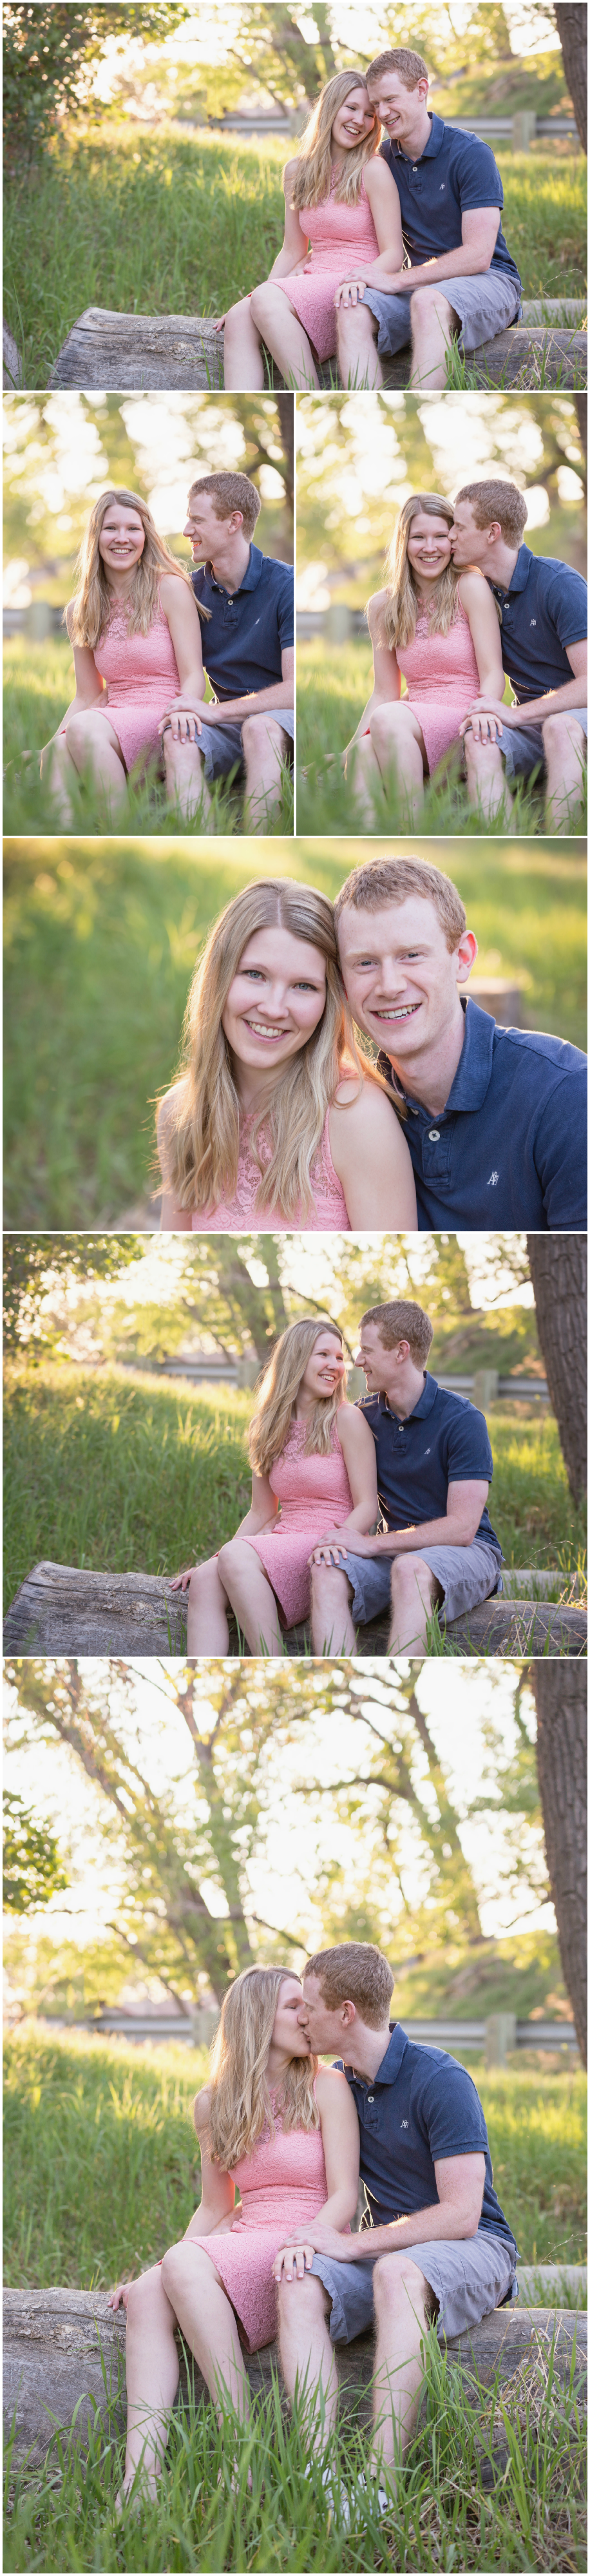 medicine_hat_photographer_engagement_2.png